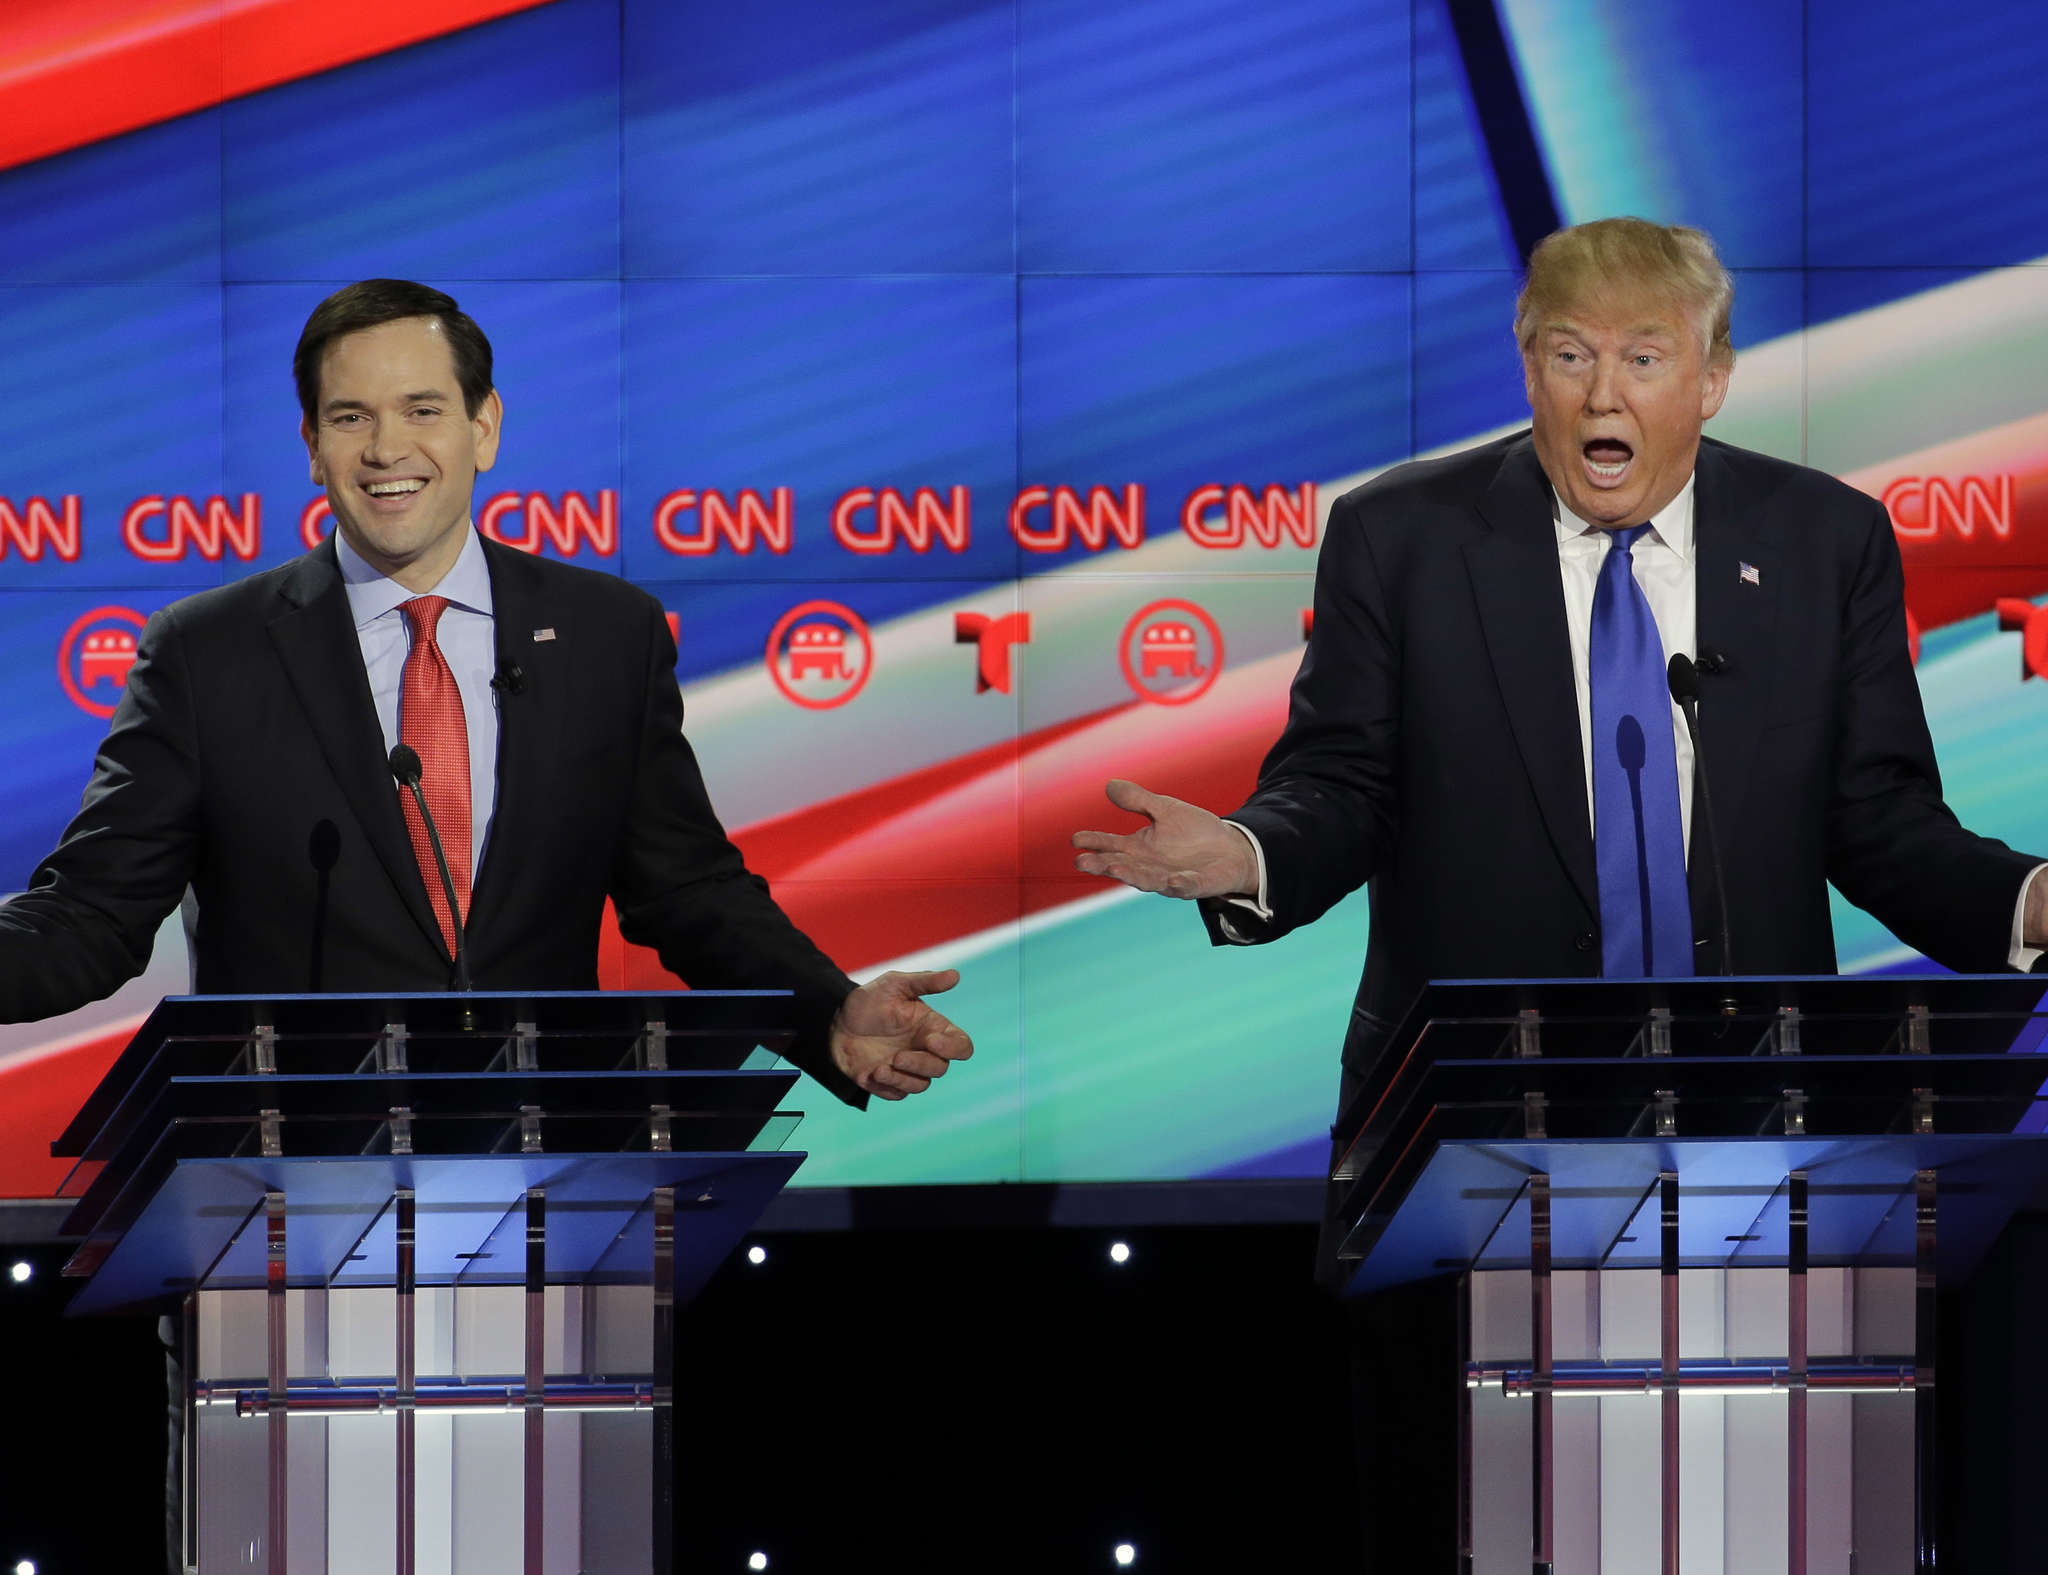 Sen. Marco Rubio and Donald Trump during a GOP primary debate: The general election debates appear to promise more of the same name calling and canned answers. AP Photo / David J. Phillip